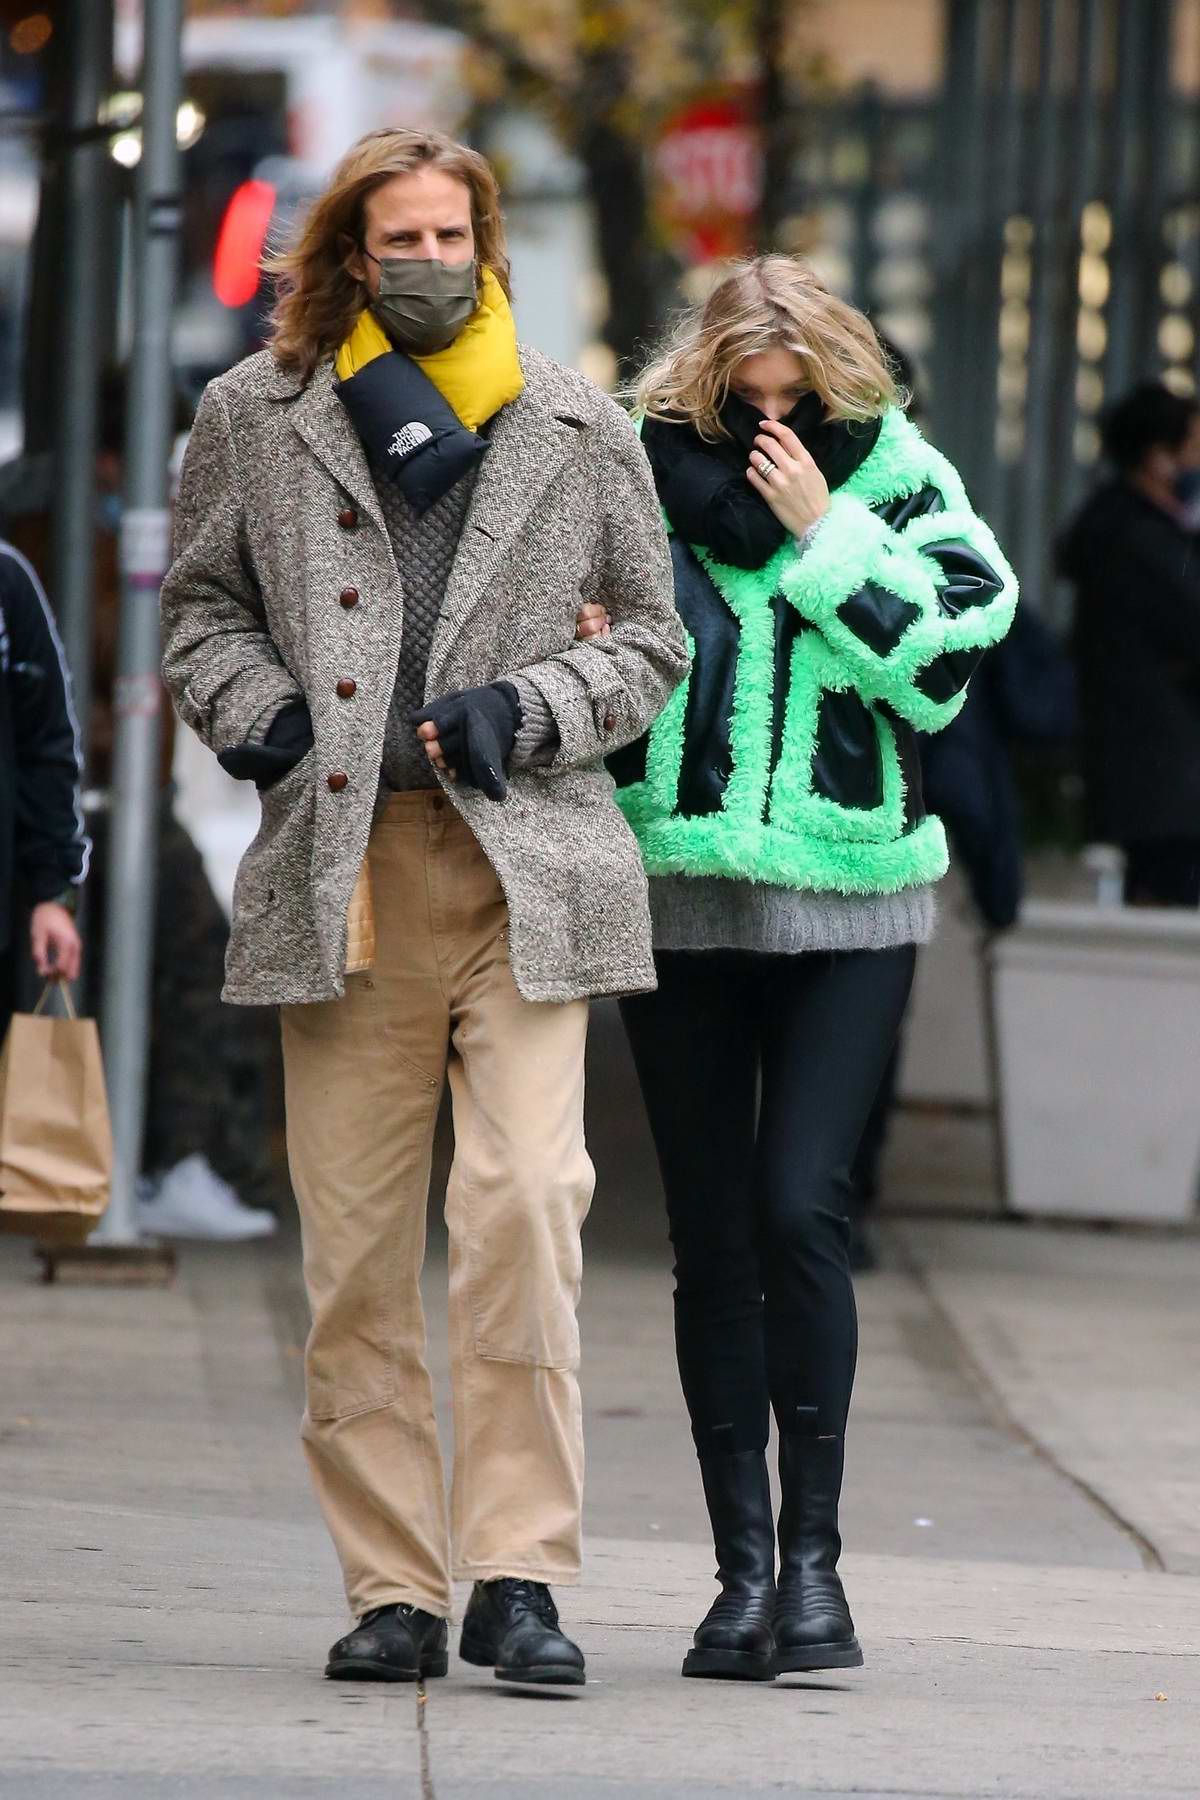 Elsa Hosk looks stylish in a green fur-lined jacket while out on a stroll with Tom Daly in New York City